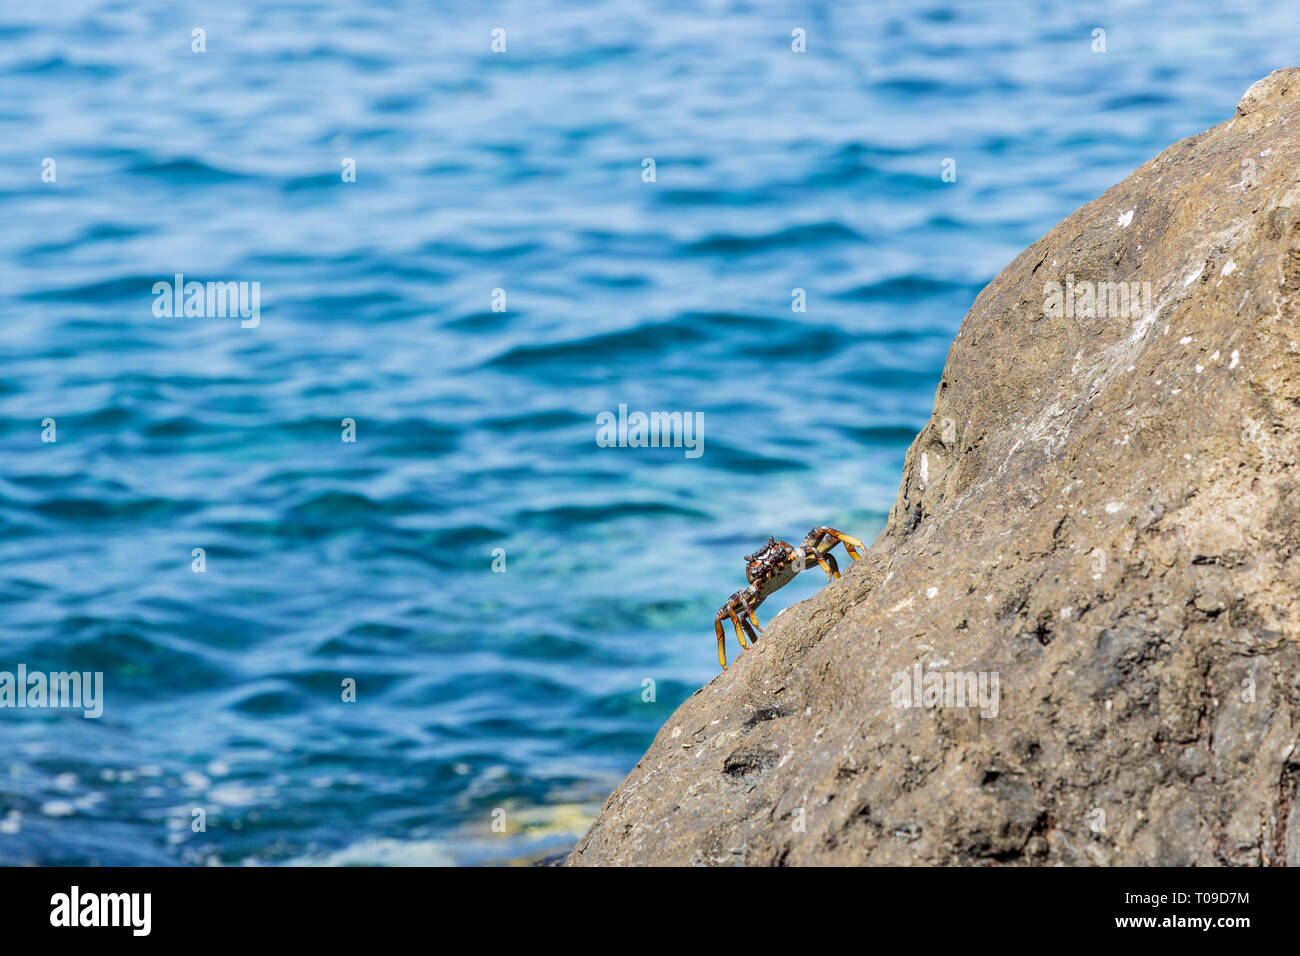 Grapsus grapsus adscensionis, red crab living on rocks along the west coast of Tenerife, Canary Islands, Spain Stock Photo